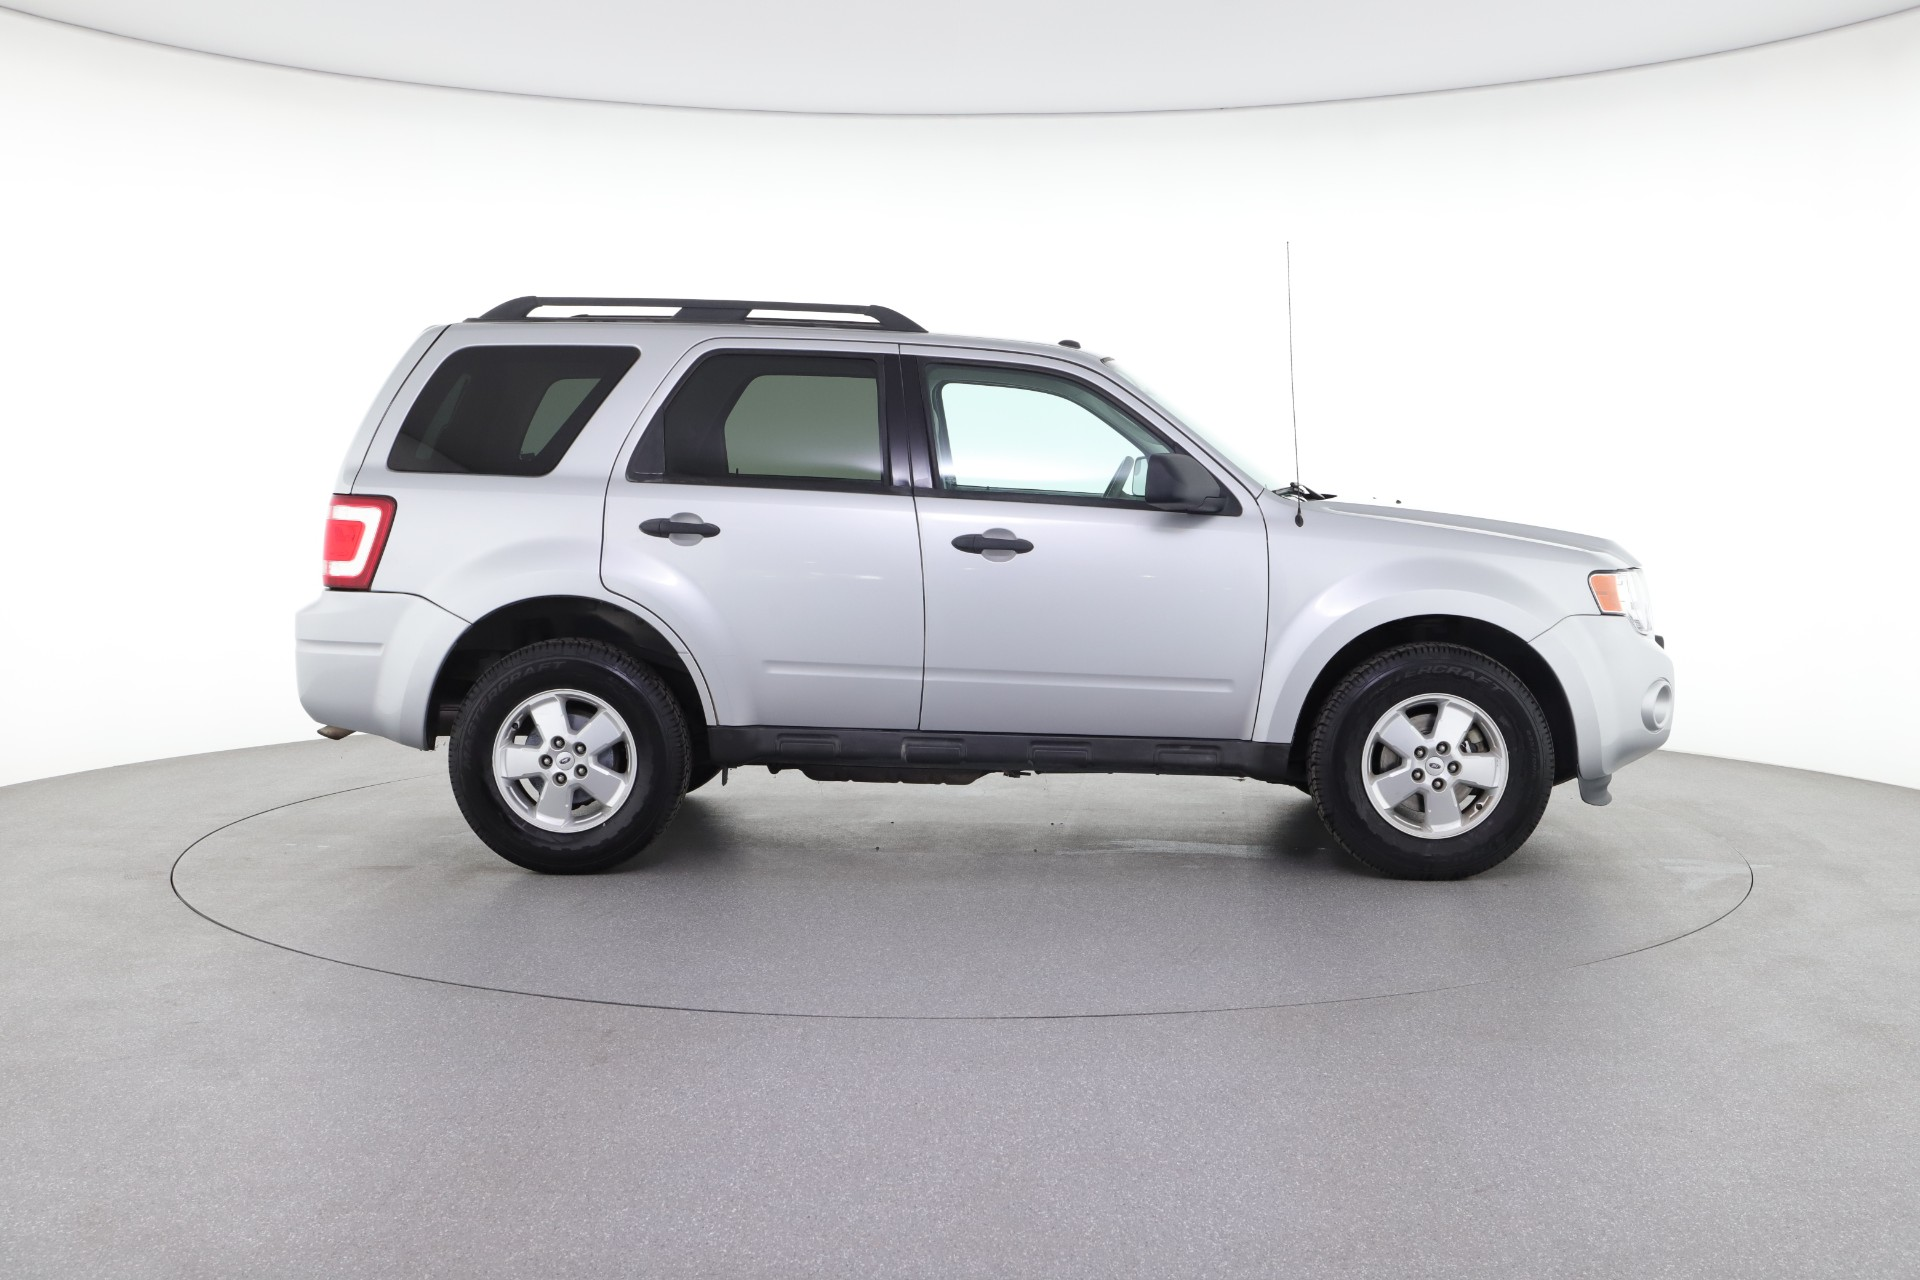 Best Used SUVs Under $15,000: The Cheapest And Most Reliable SUVs